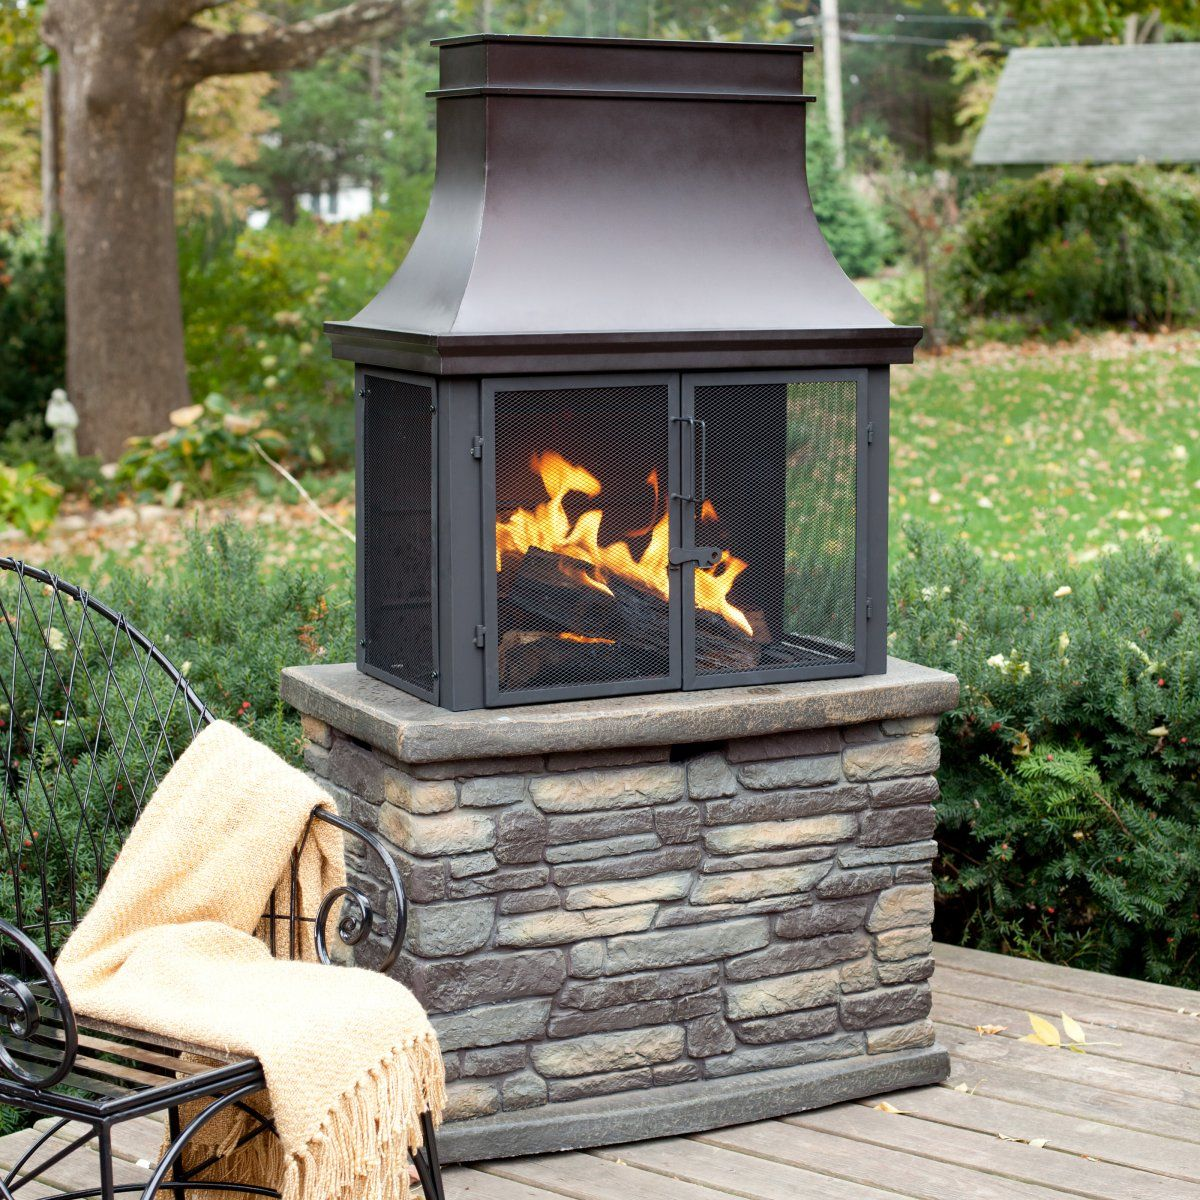 Bond Wood Burning Fireplace Outdoor Fireplaces Chimineas At Hayneedle Outside Love